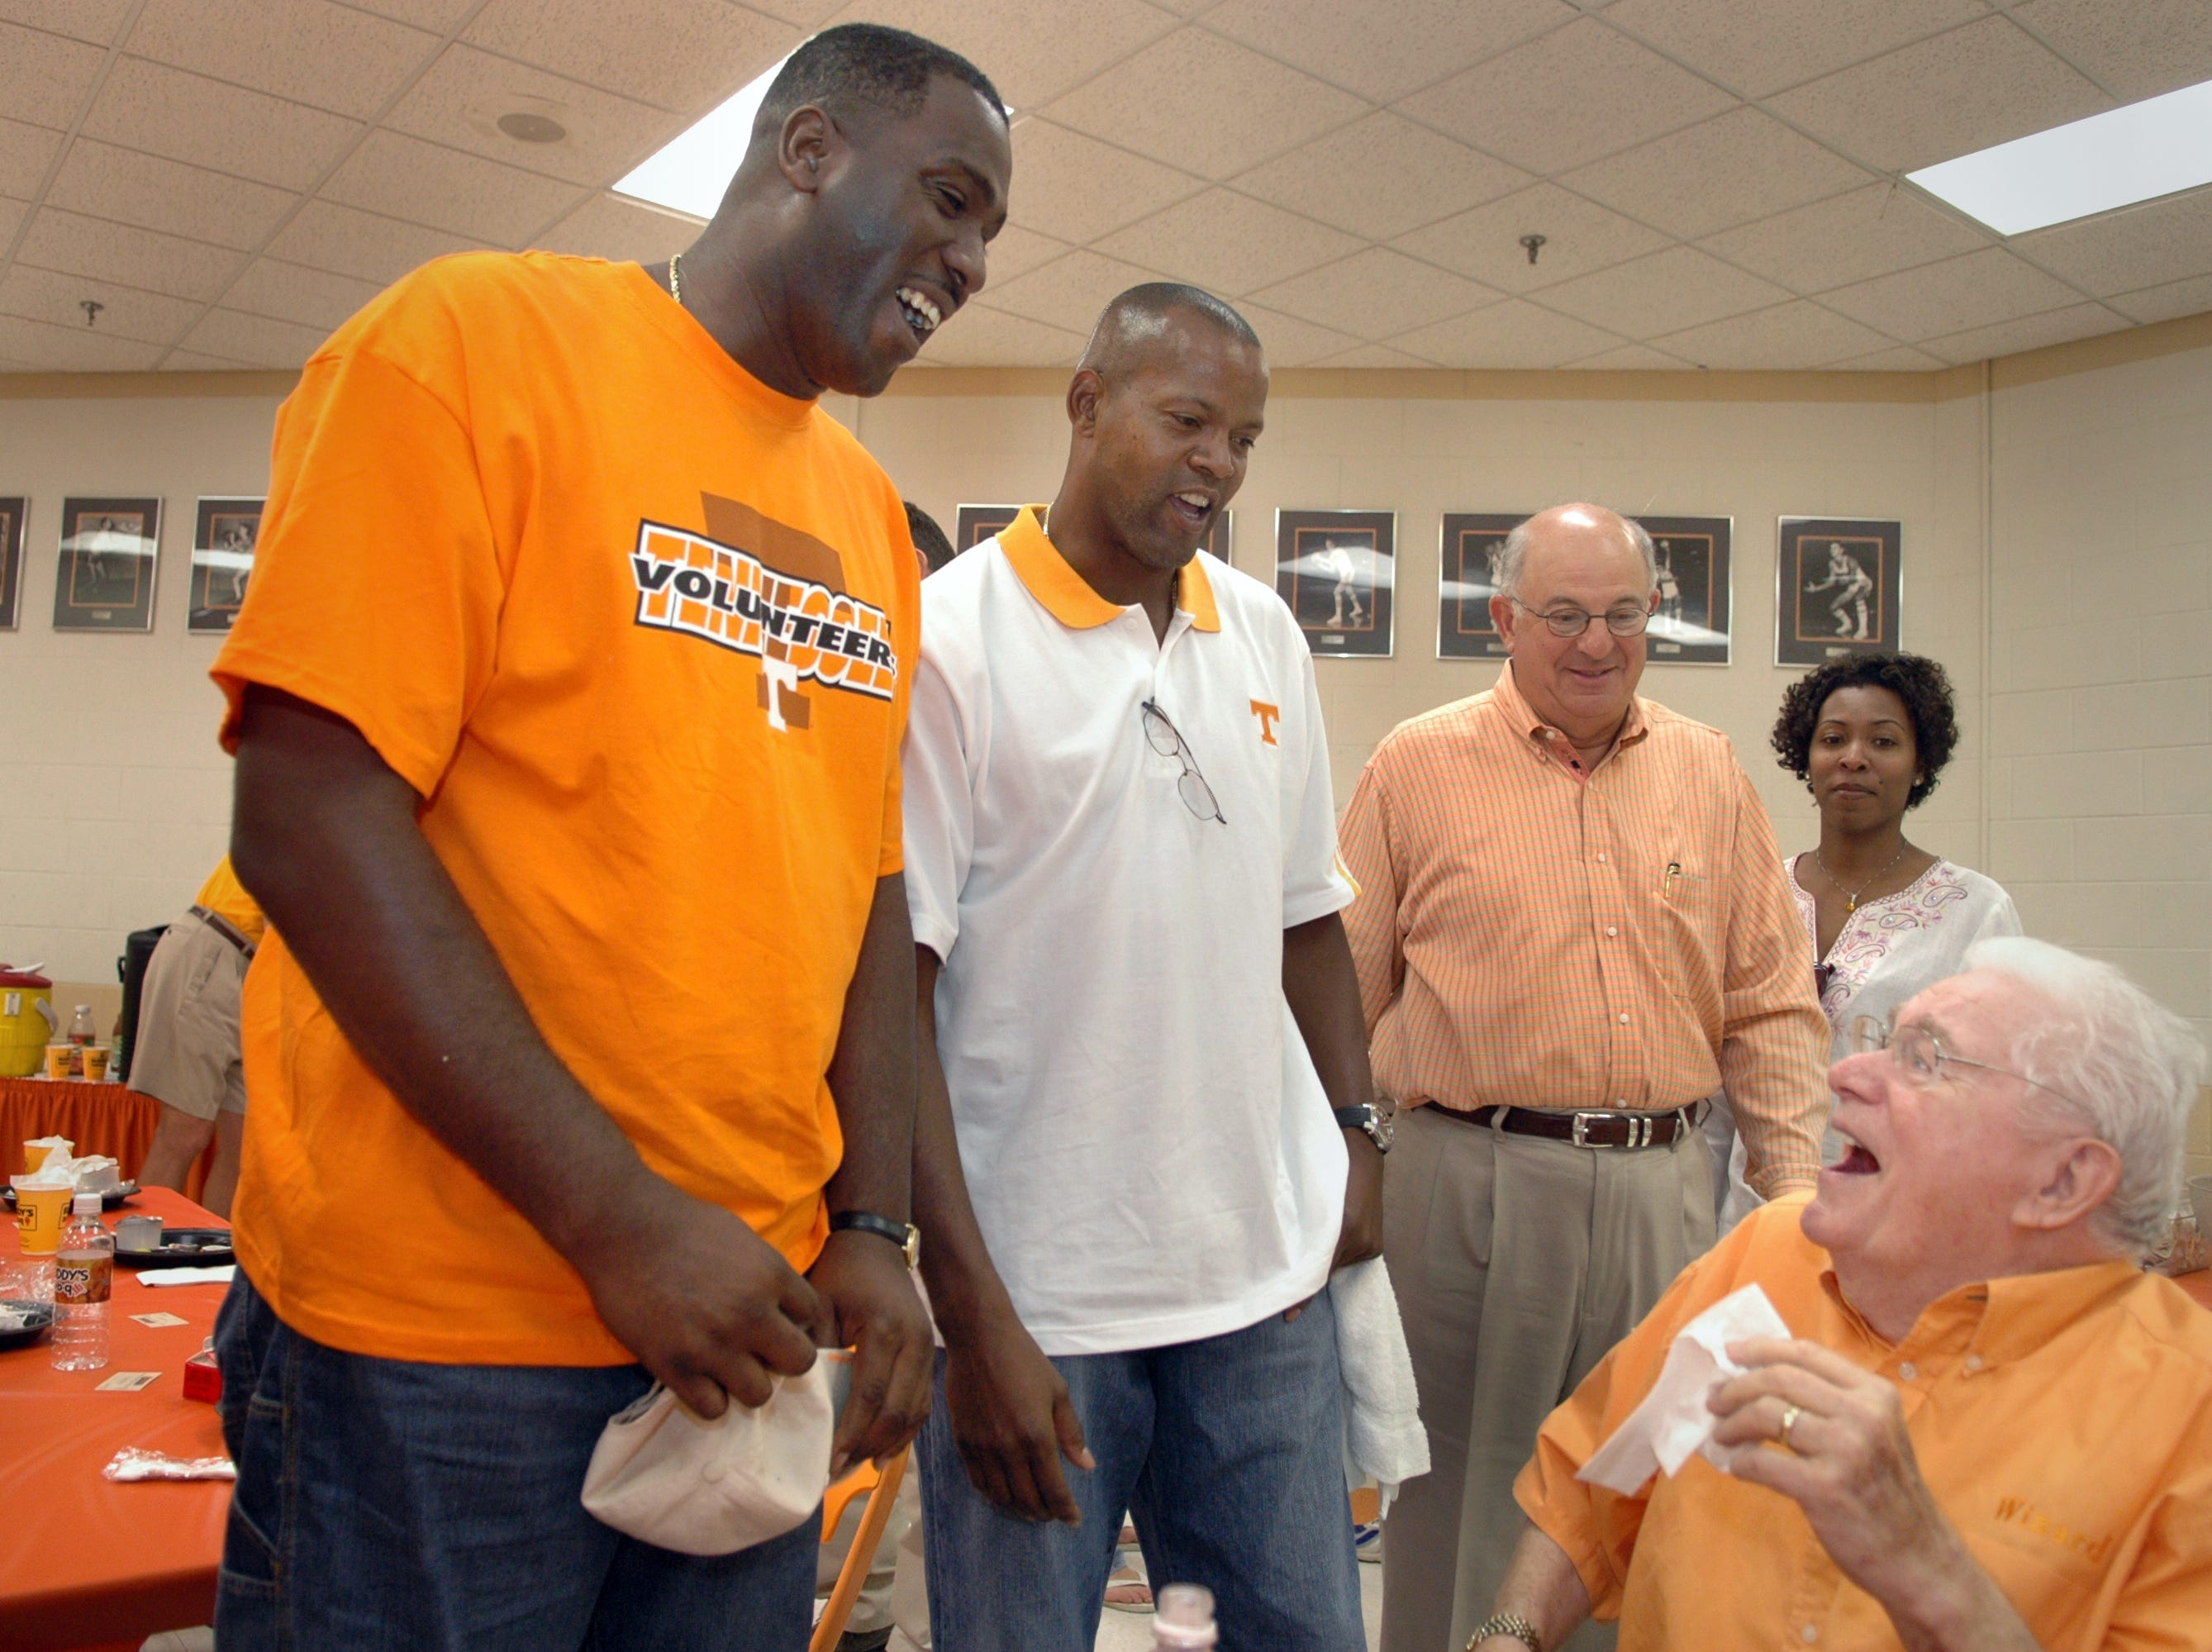 Reggie Johnson, left, and Dale Ellis, center, talk with Ray Mears, seated,  Saturday at Thompson-Boling Arena.